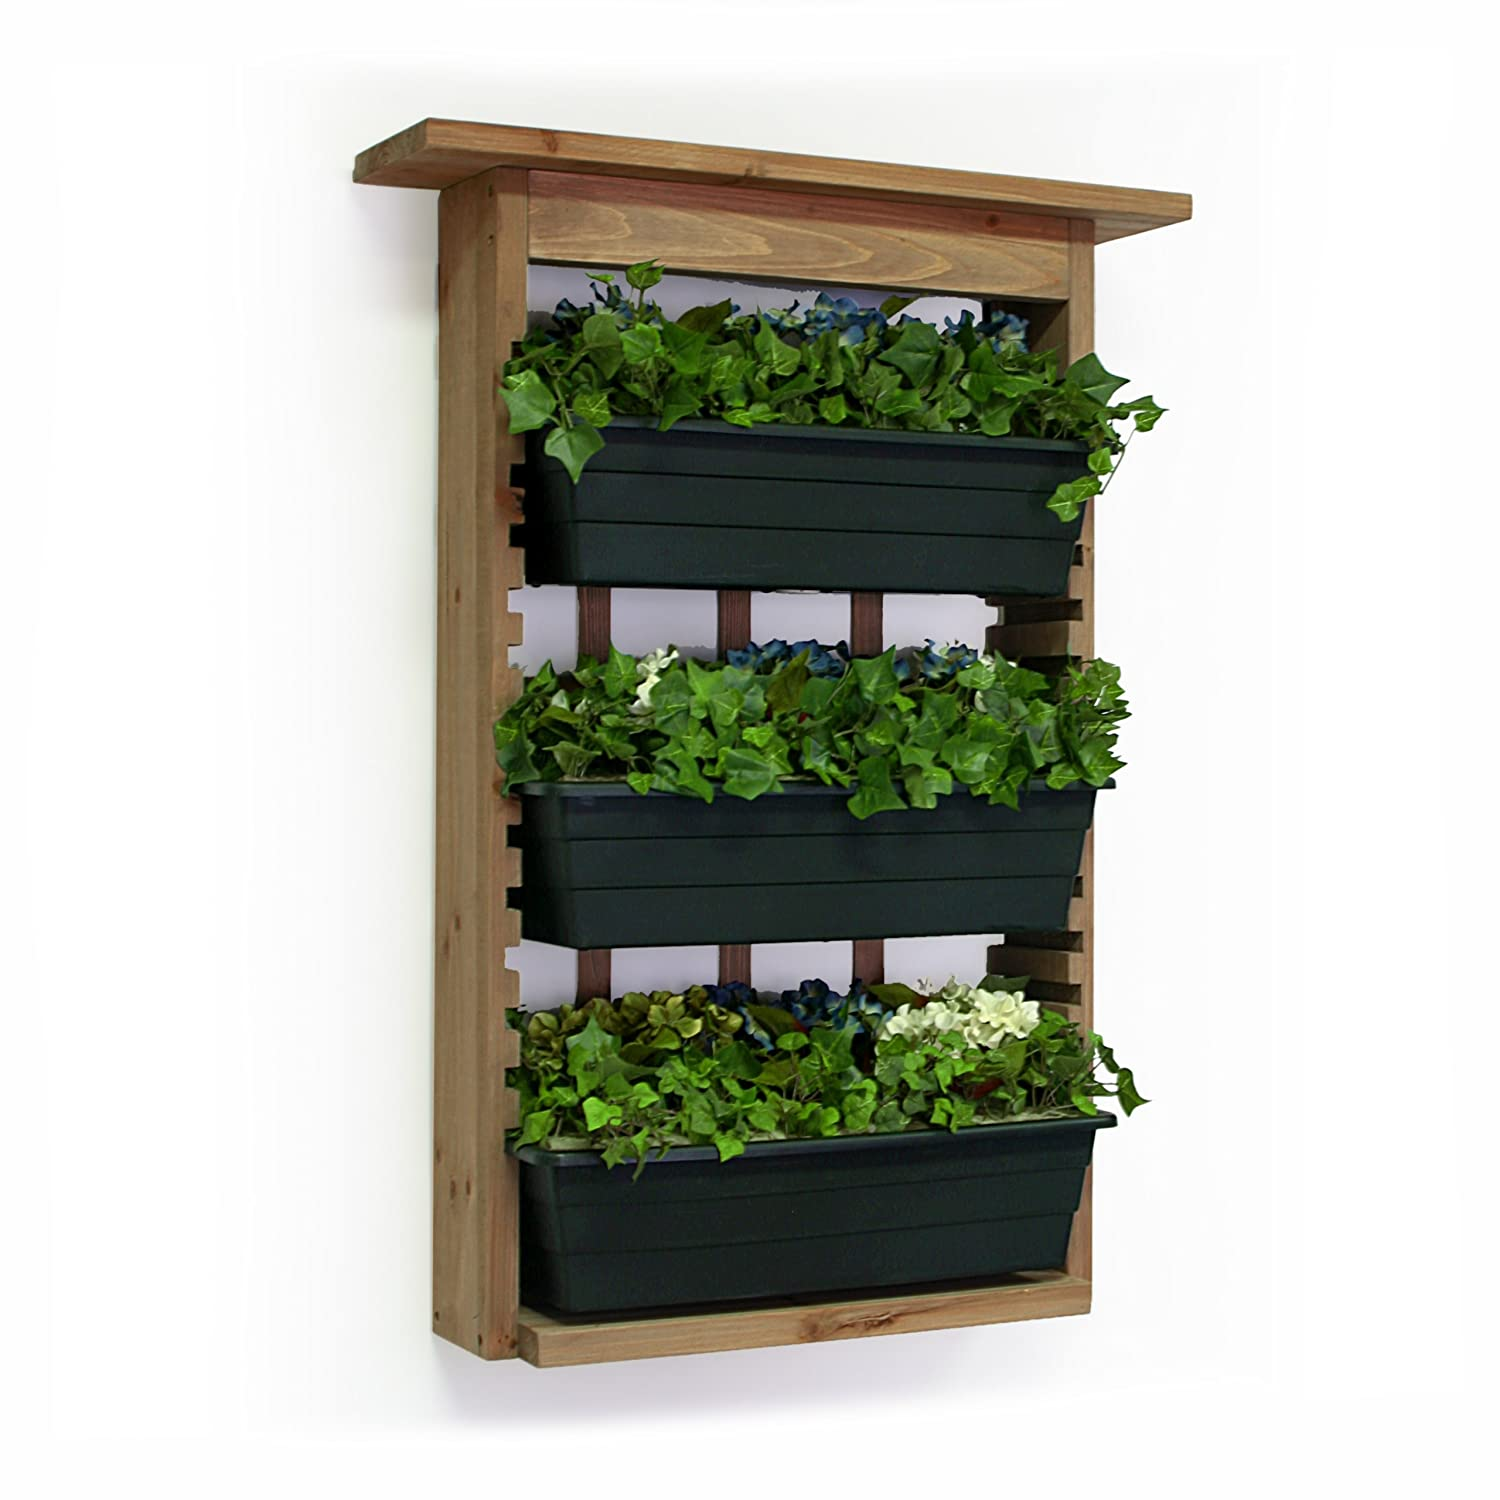 Algreen 34002 Garden View, Vertical Living Wall Planter